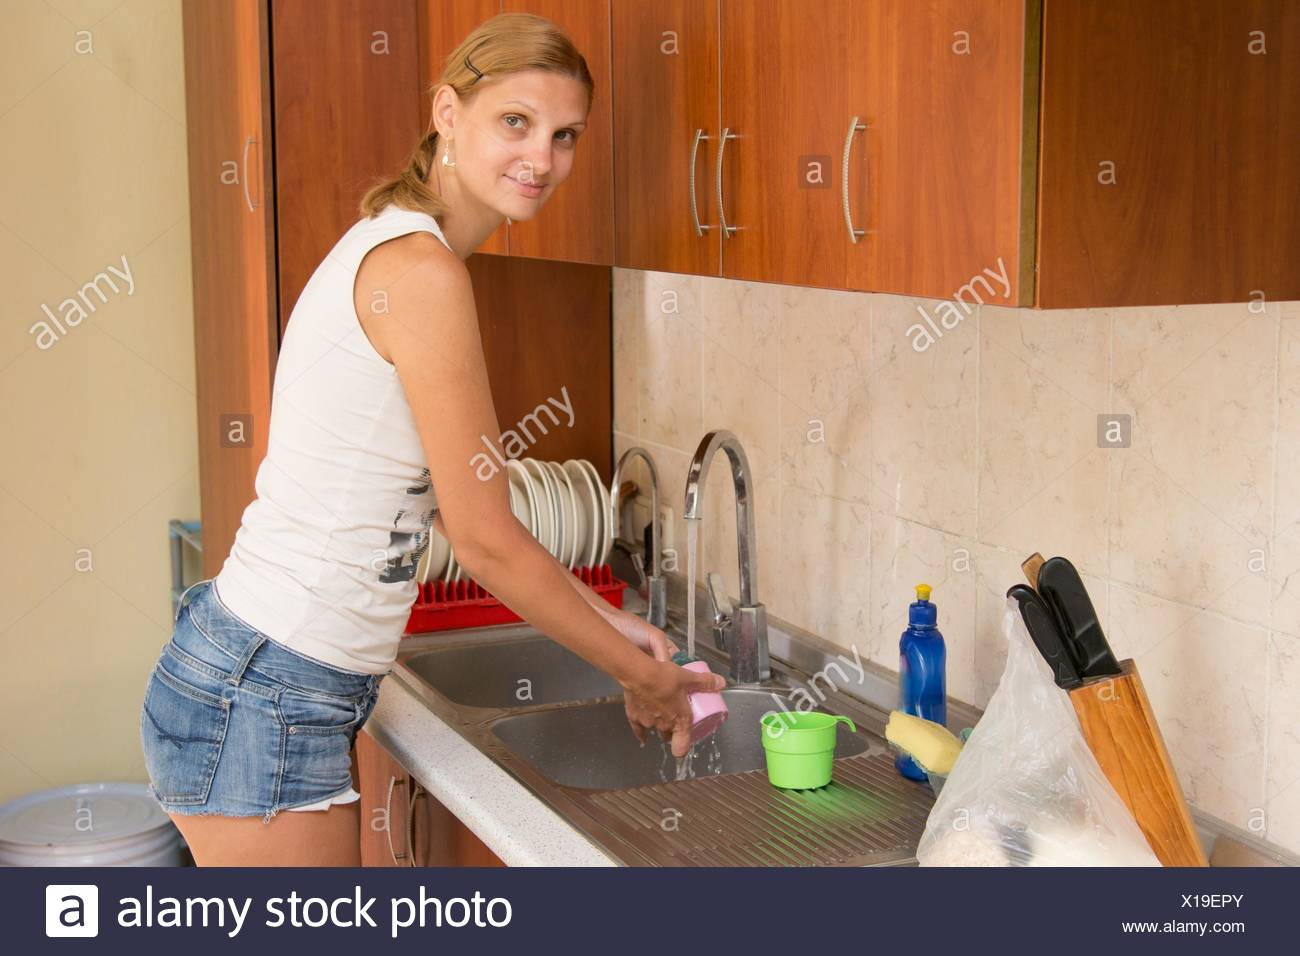 Young girl housewife washing dishes in the kitchen. - Stock Image